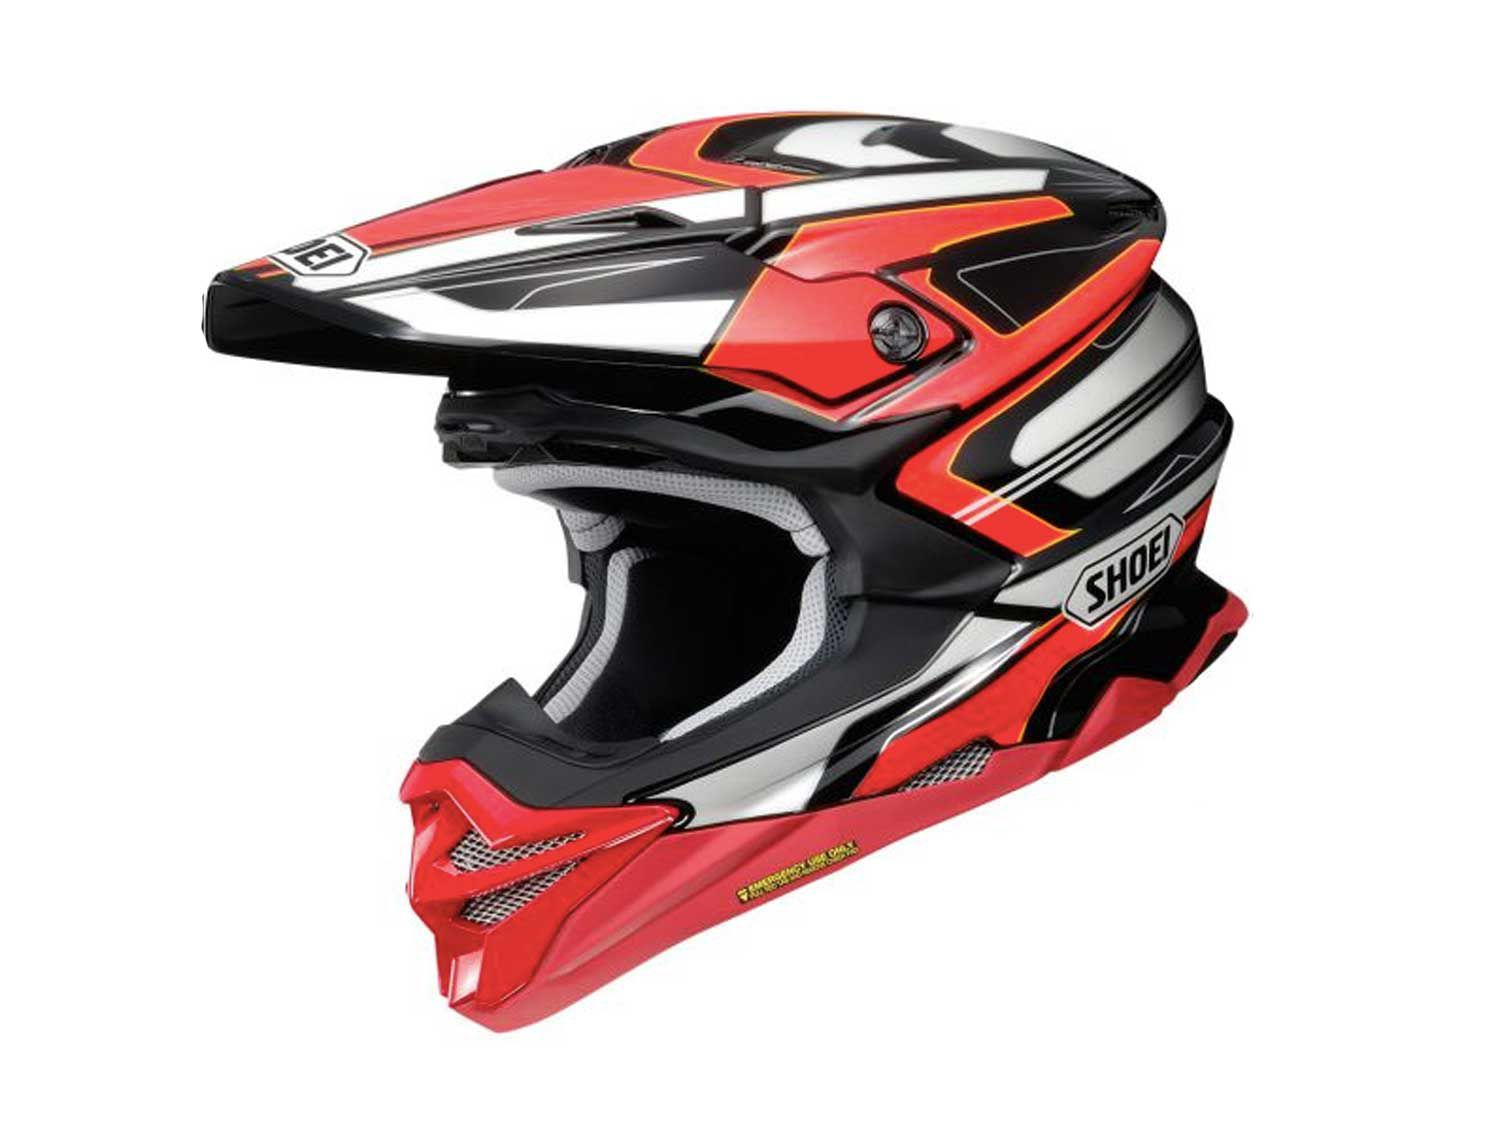 The Shoei VFX-EVO features Motion Energy Distribution System (M.E.D.S.) and is offered in 12 different colorways. The most expensive is the Brayton TC-1 (pictured) at $699.